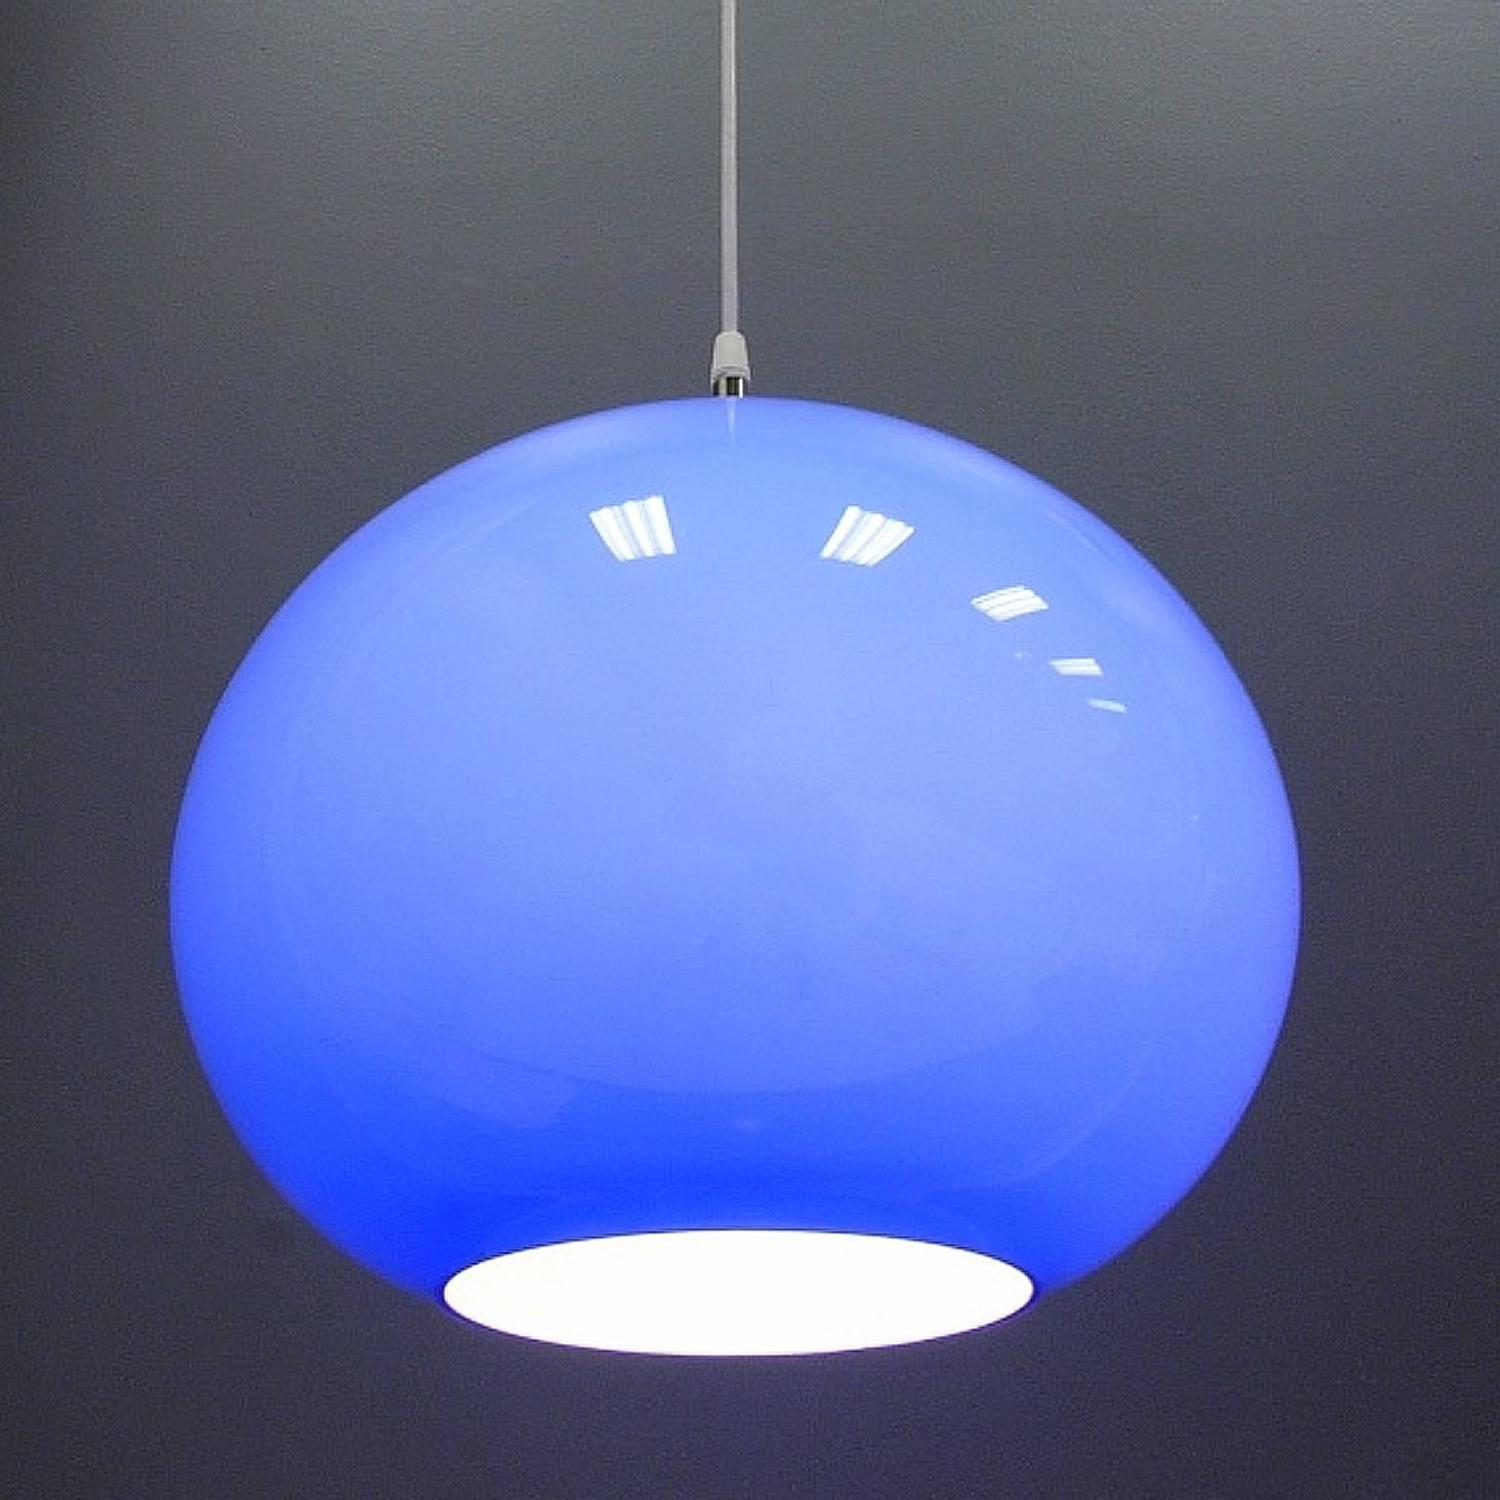 Globe Pendant Light Fixture